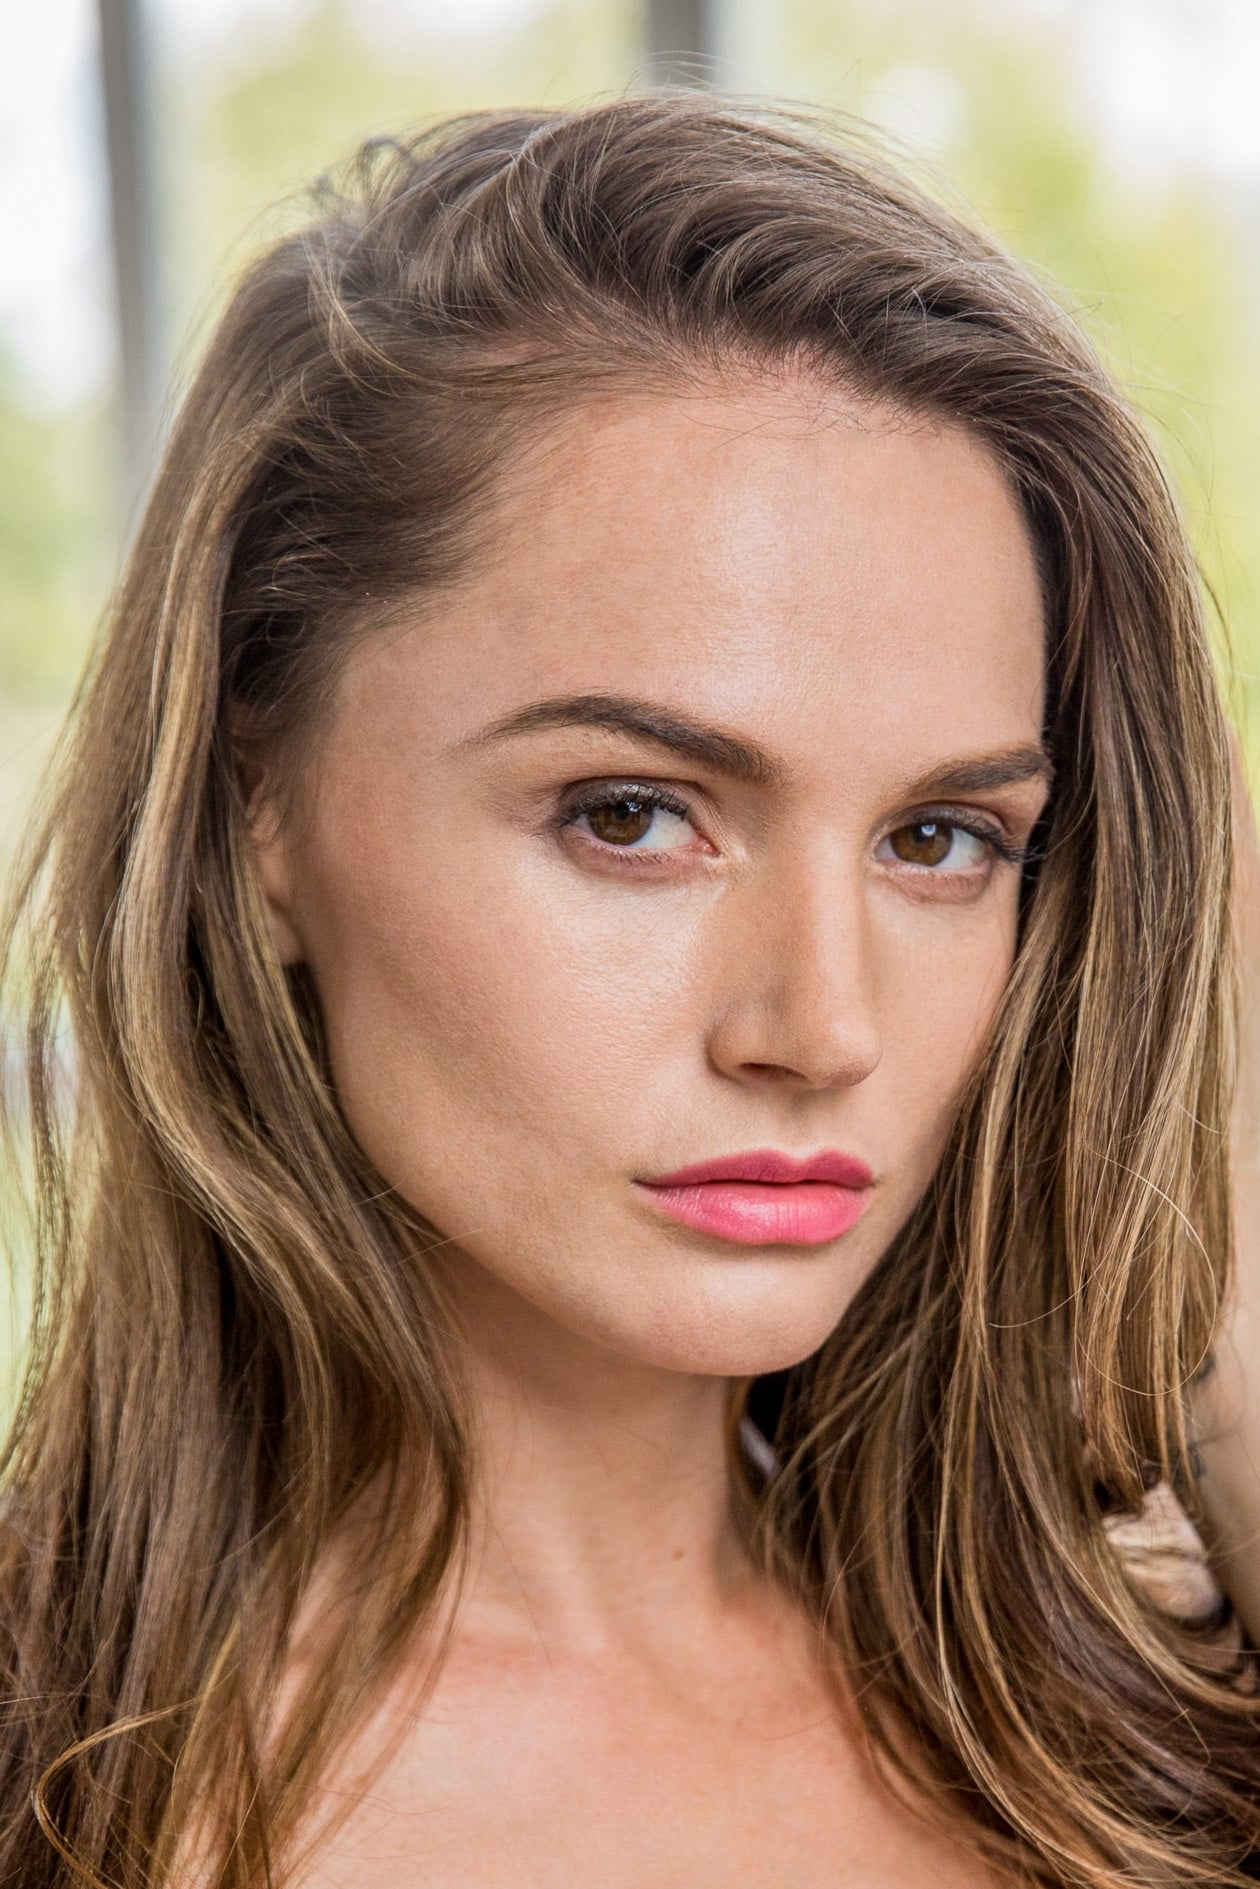 Tori Black - Profile Images  The Movie Database Tmdb-8377